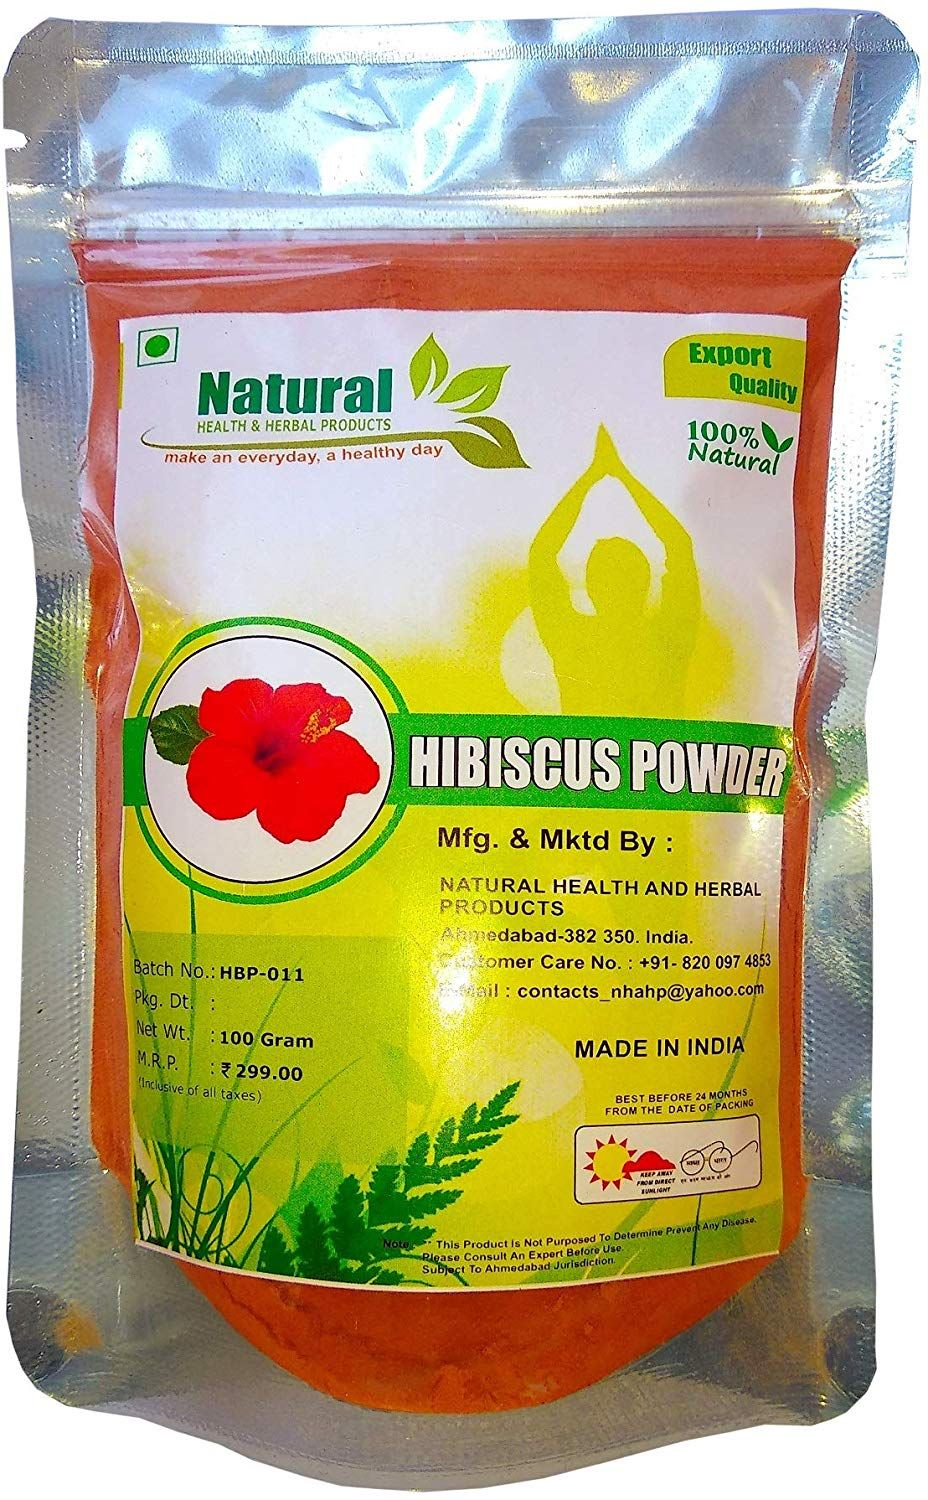 Natural Health And Herbal Products Hibiscus Flower Powder For Hair Growth 100 Grams Condition Dry Hair Herbalism Natural Health